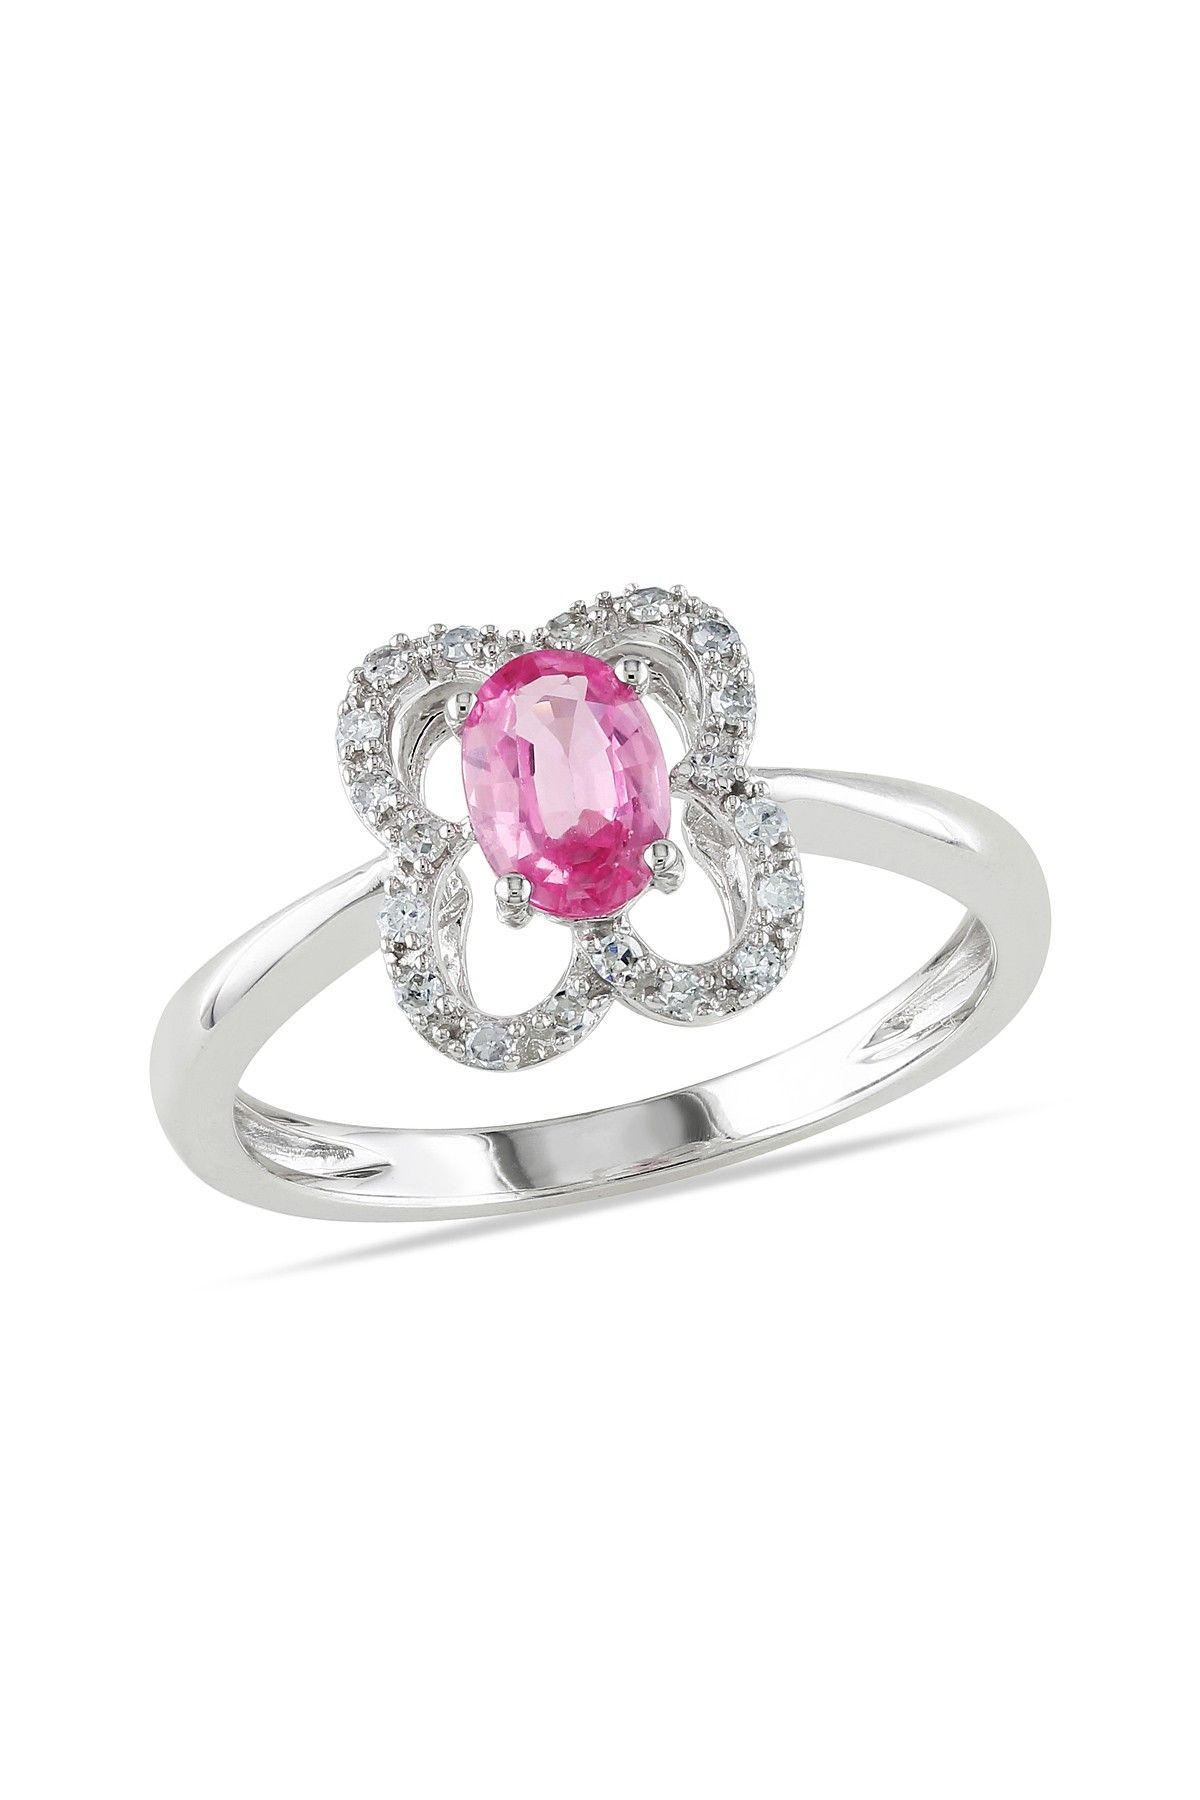 10k White Gold Pink Sapphire Diamond Ring 0 10 Ctw With Images Pink Sapphire Ring Engagement Pink Sapphire Diamond Ring Beautiful Jewelry